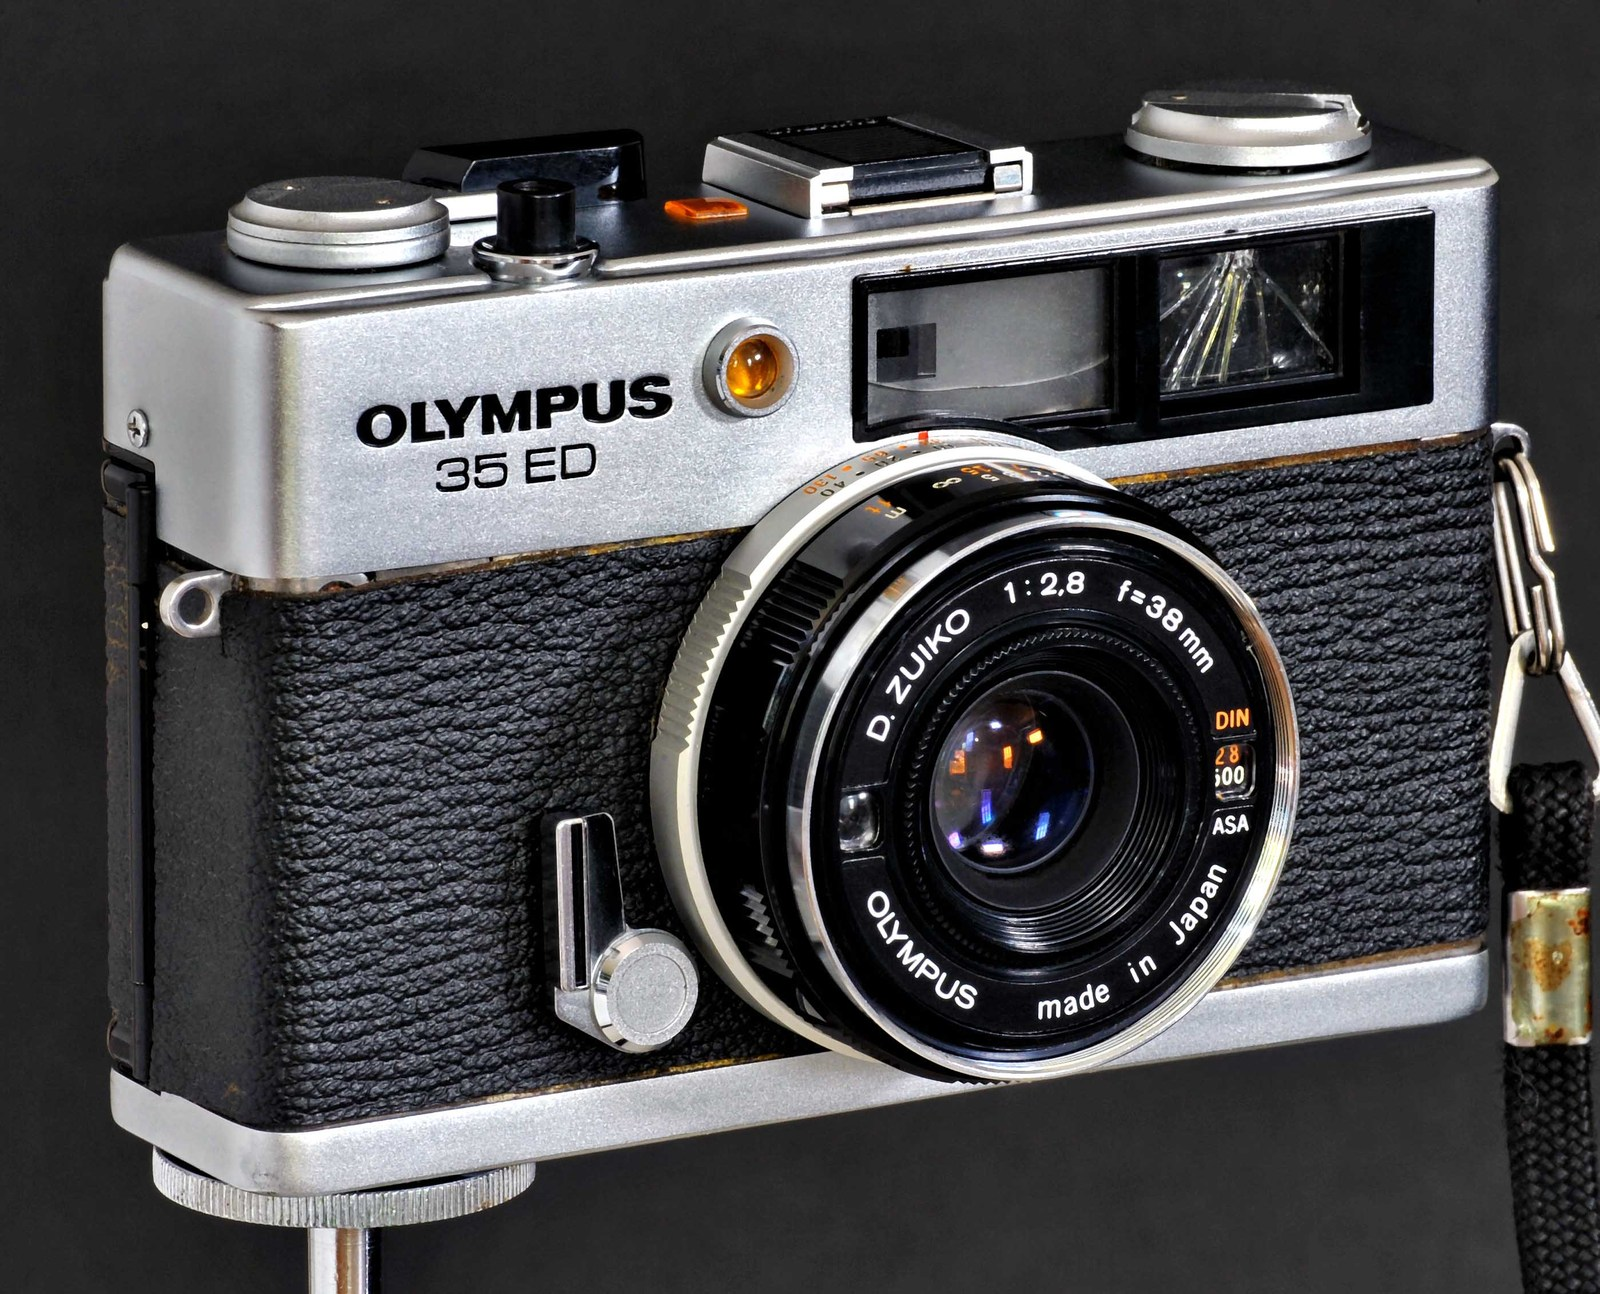 Olympus 35 ed w 38 f2.8 d.zuiko cracked vf.sf